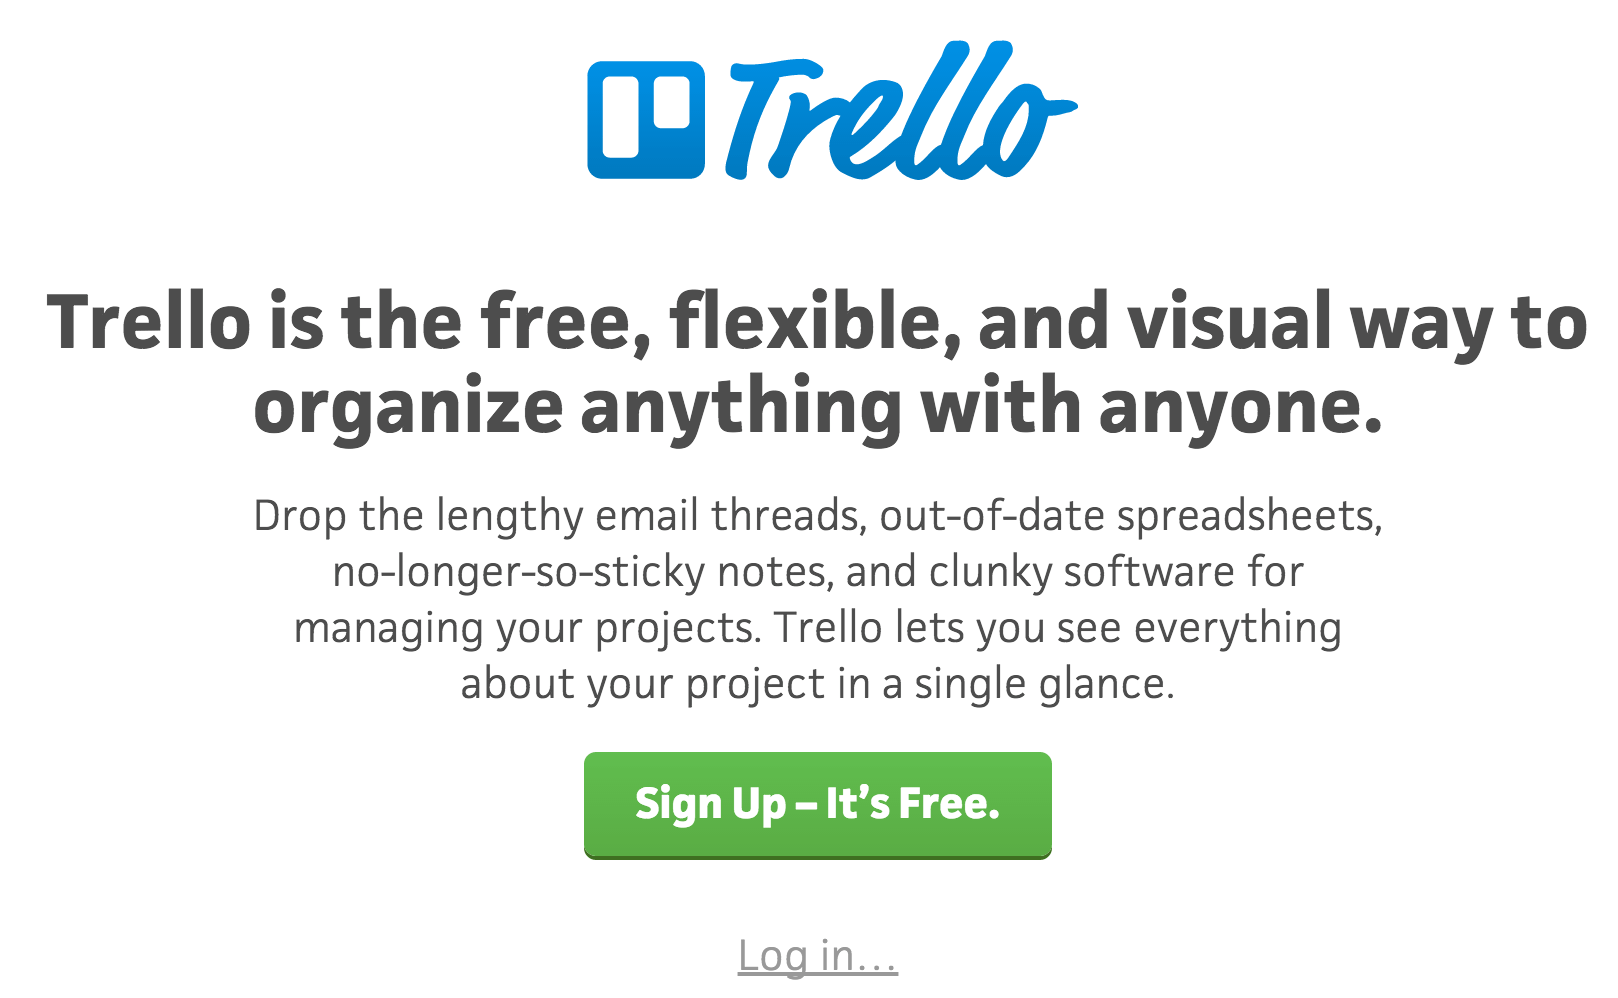 A screenshot of the Trello homepage.